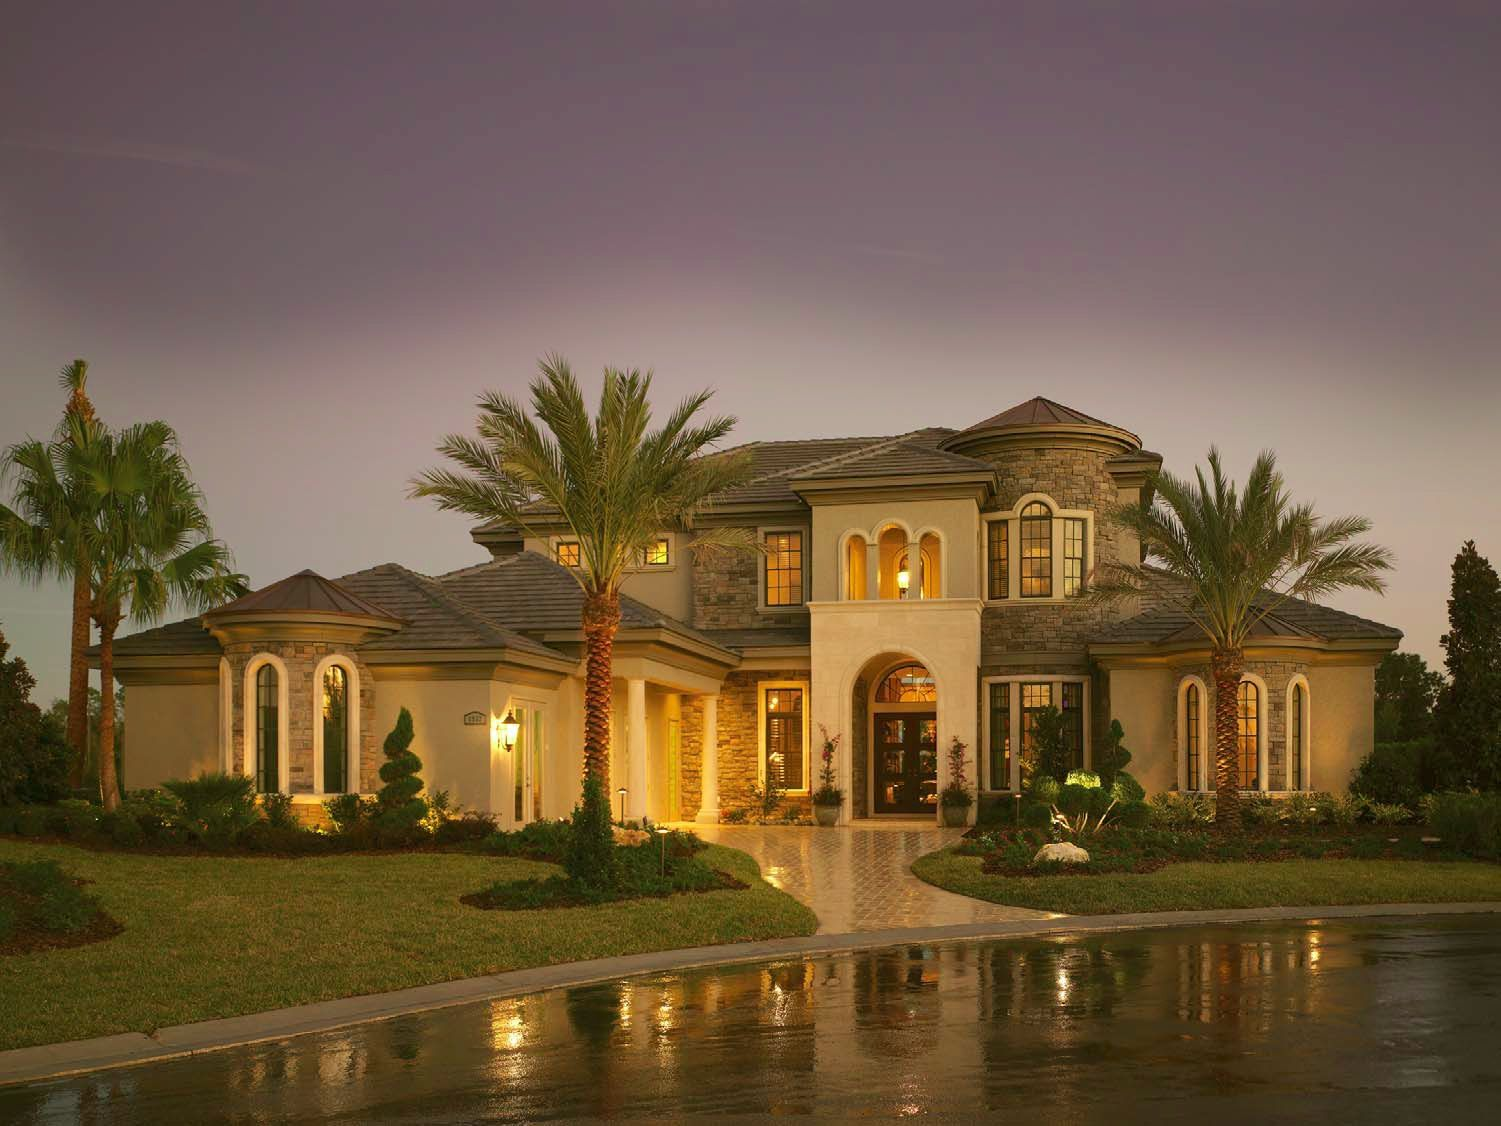 The audrey custom home designed and built by tampa home builders - Arthur Rutenberg Homes Is A Luxury Custom Home Builder Dedicated To Helping You Build Your Dream Home Explore Our Options For Building Custom Luxury Homes